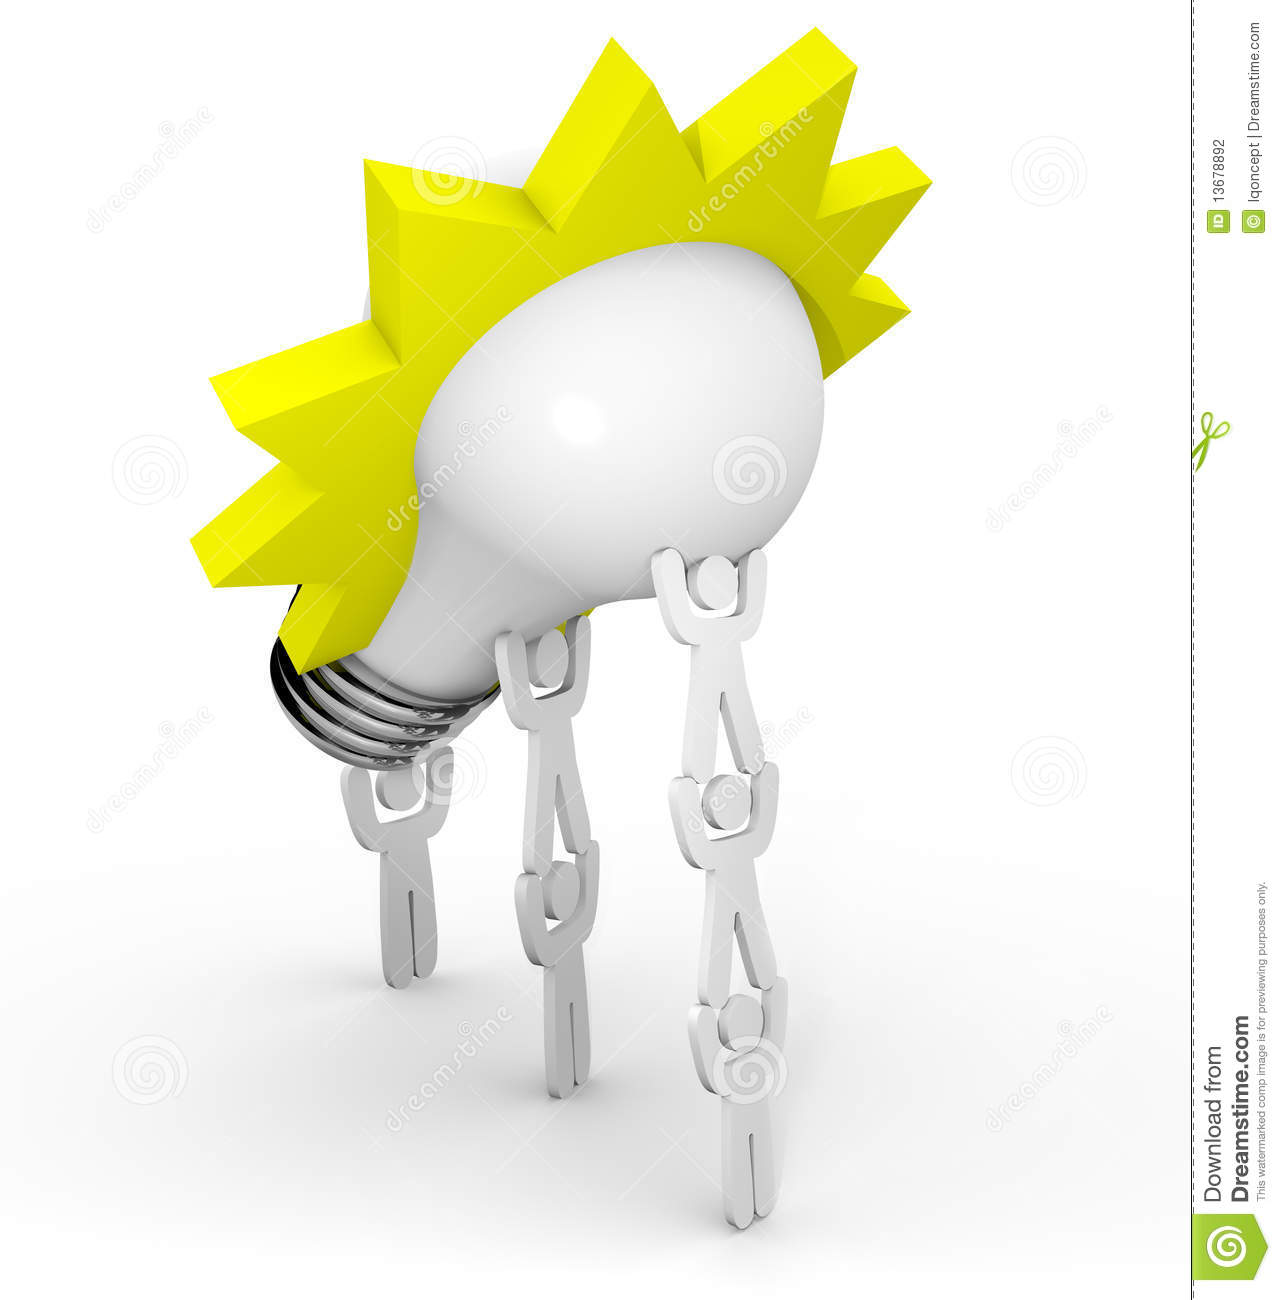 More similar stock images of ` Innovation - Team Lifting Light Bulb `